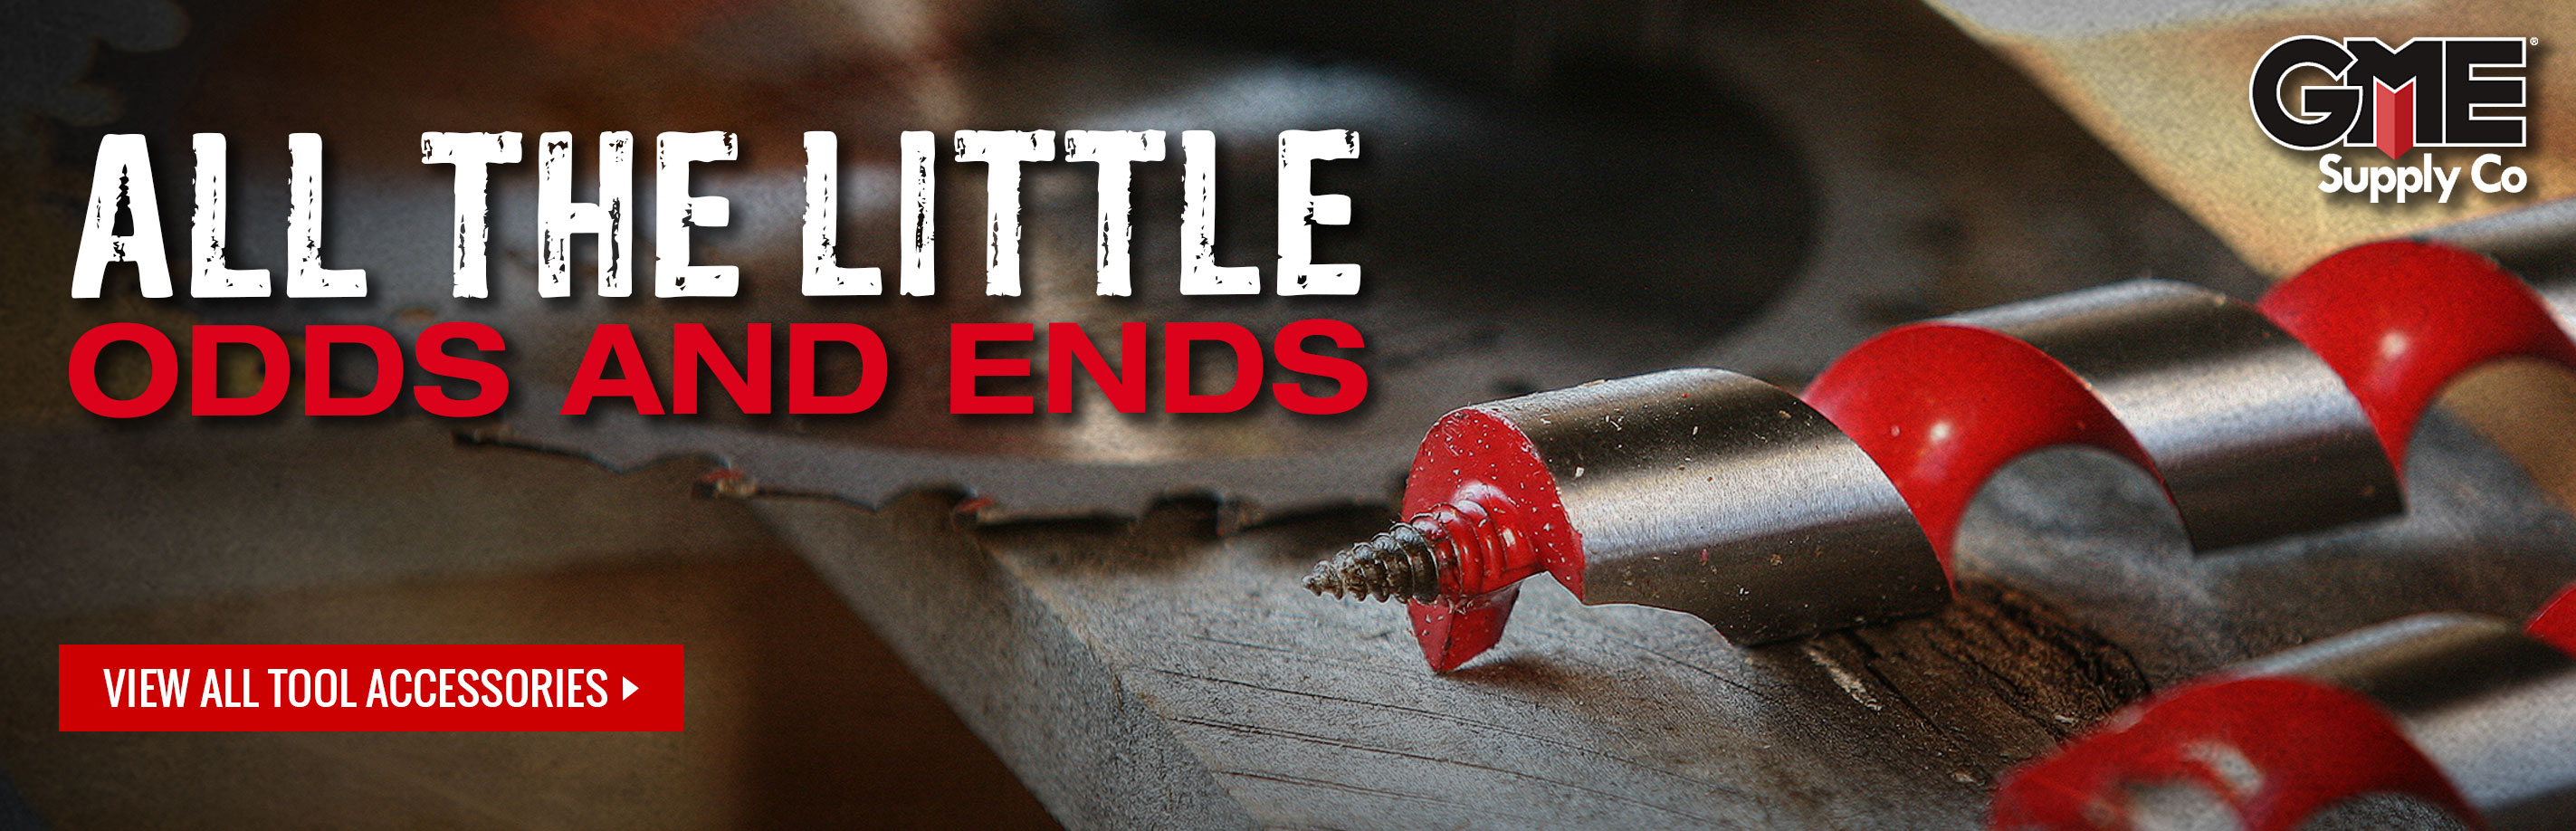 Tool accessories, bits, blades, and sockets at GME Supply